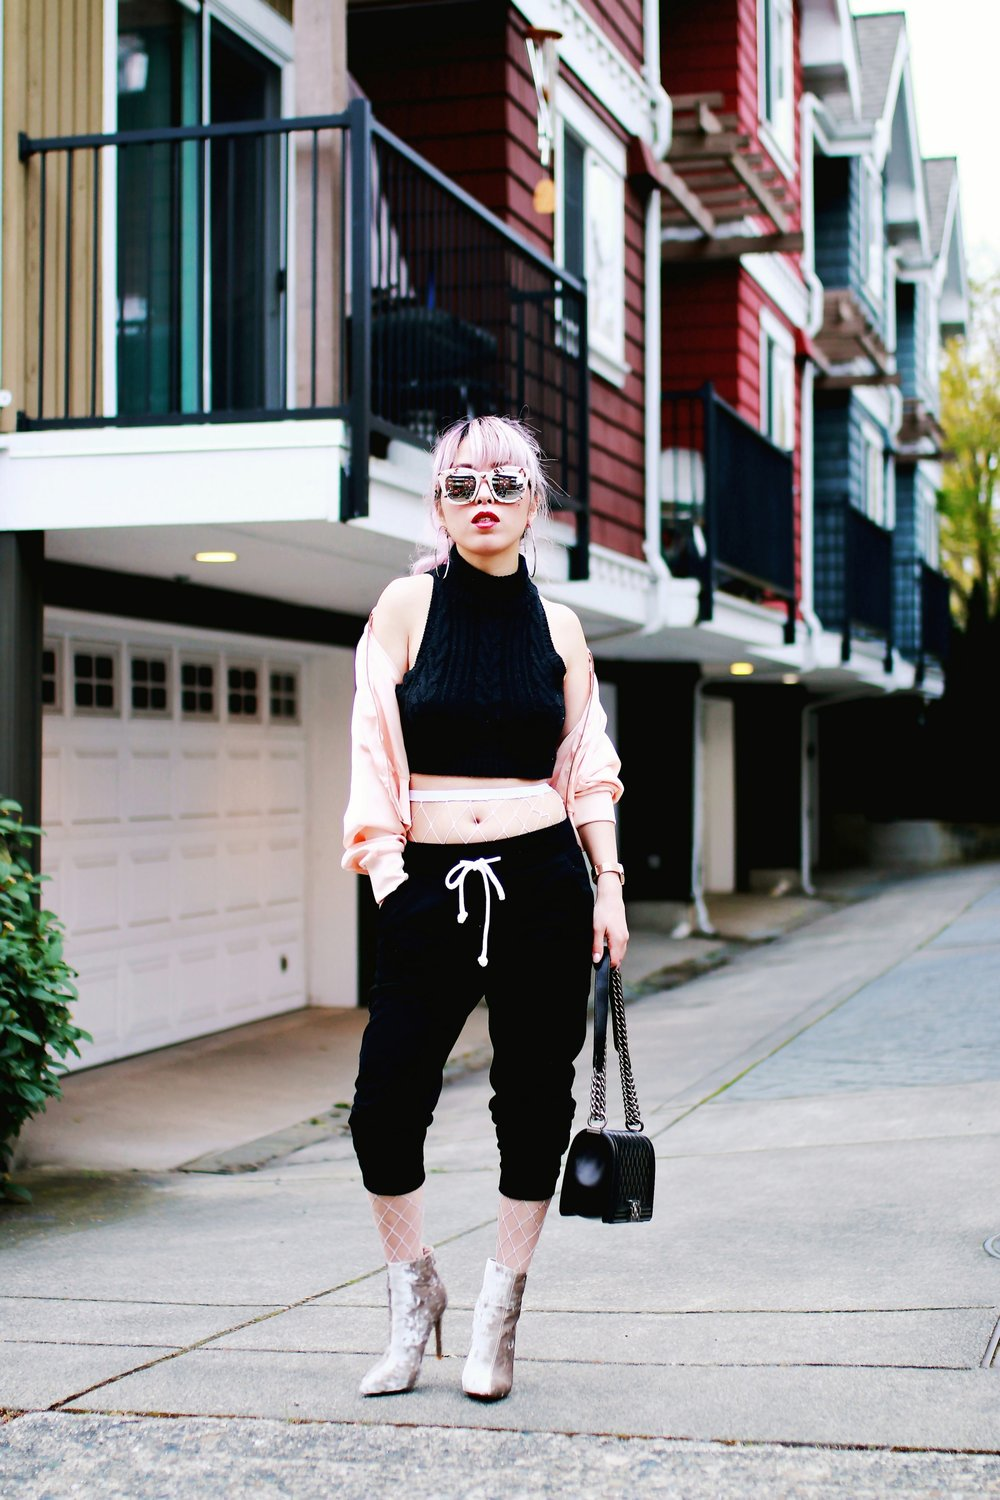 Zara Blush Silk Bomber Jacket_Missguided mock neck Crop top_ASOS fishnet tights_H&M sweatpants_Public Desire Boots_Chanel Bag_L'Oreal Red Lipstick_Free People Mirrored Sunglasses_Aikas Love Closet_Seattle Fashion Style Blogger_Pink Hair 18